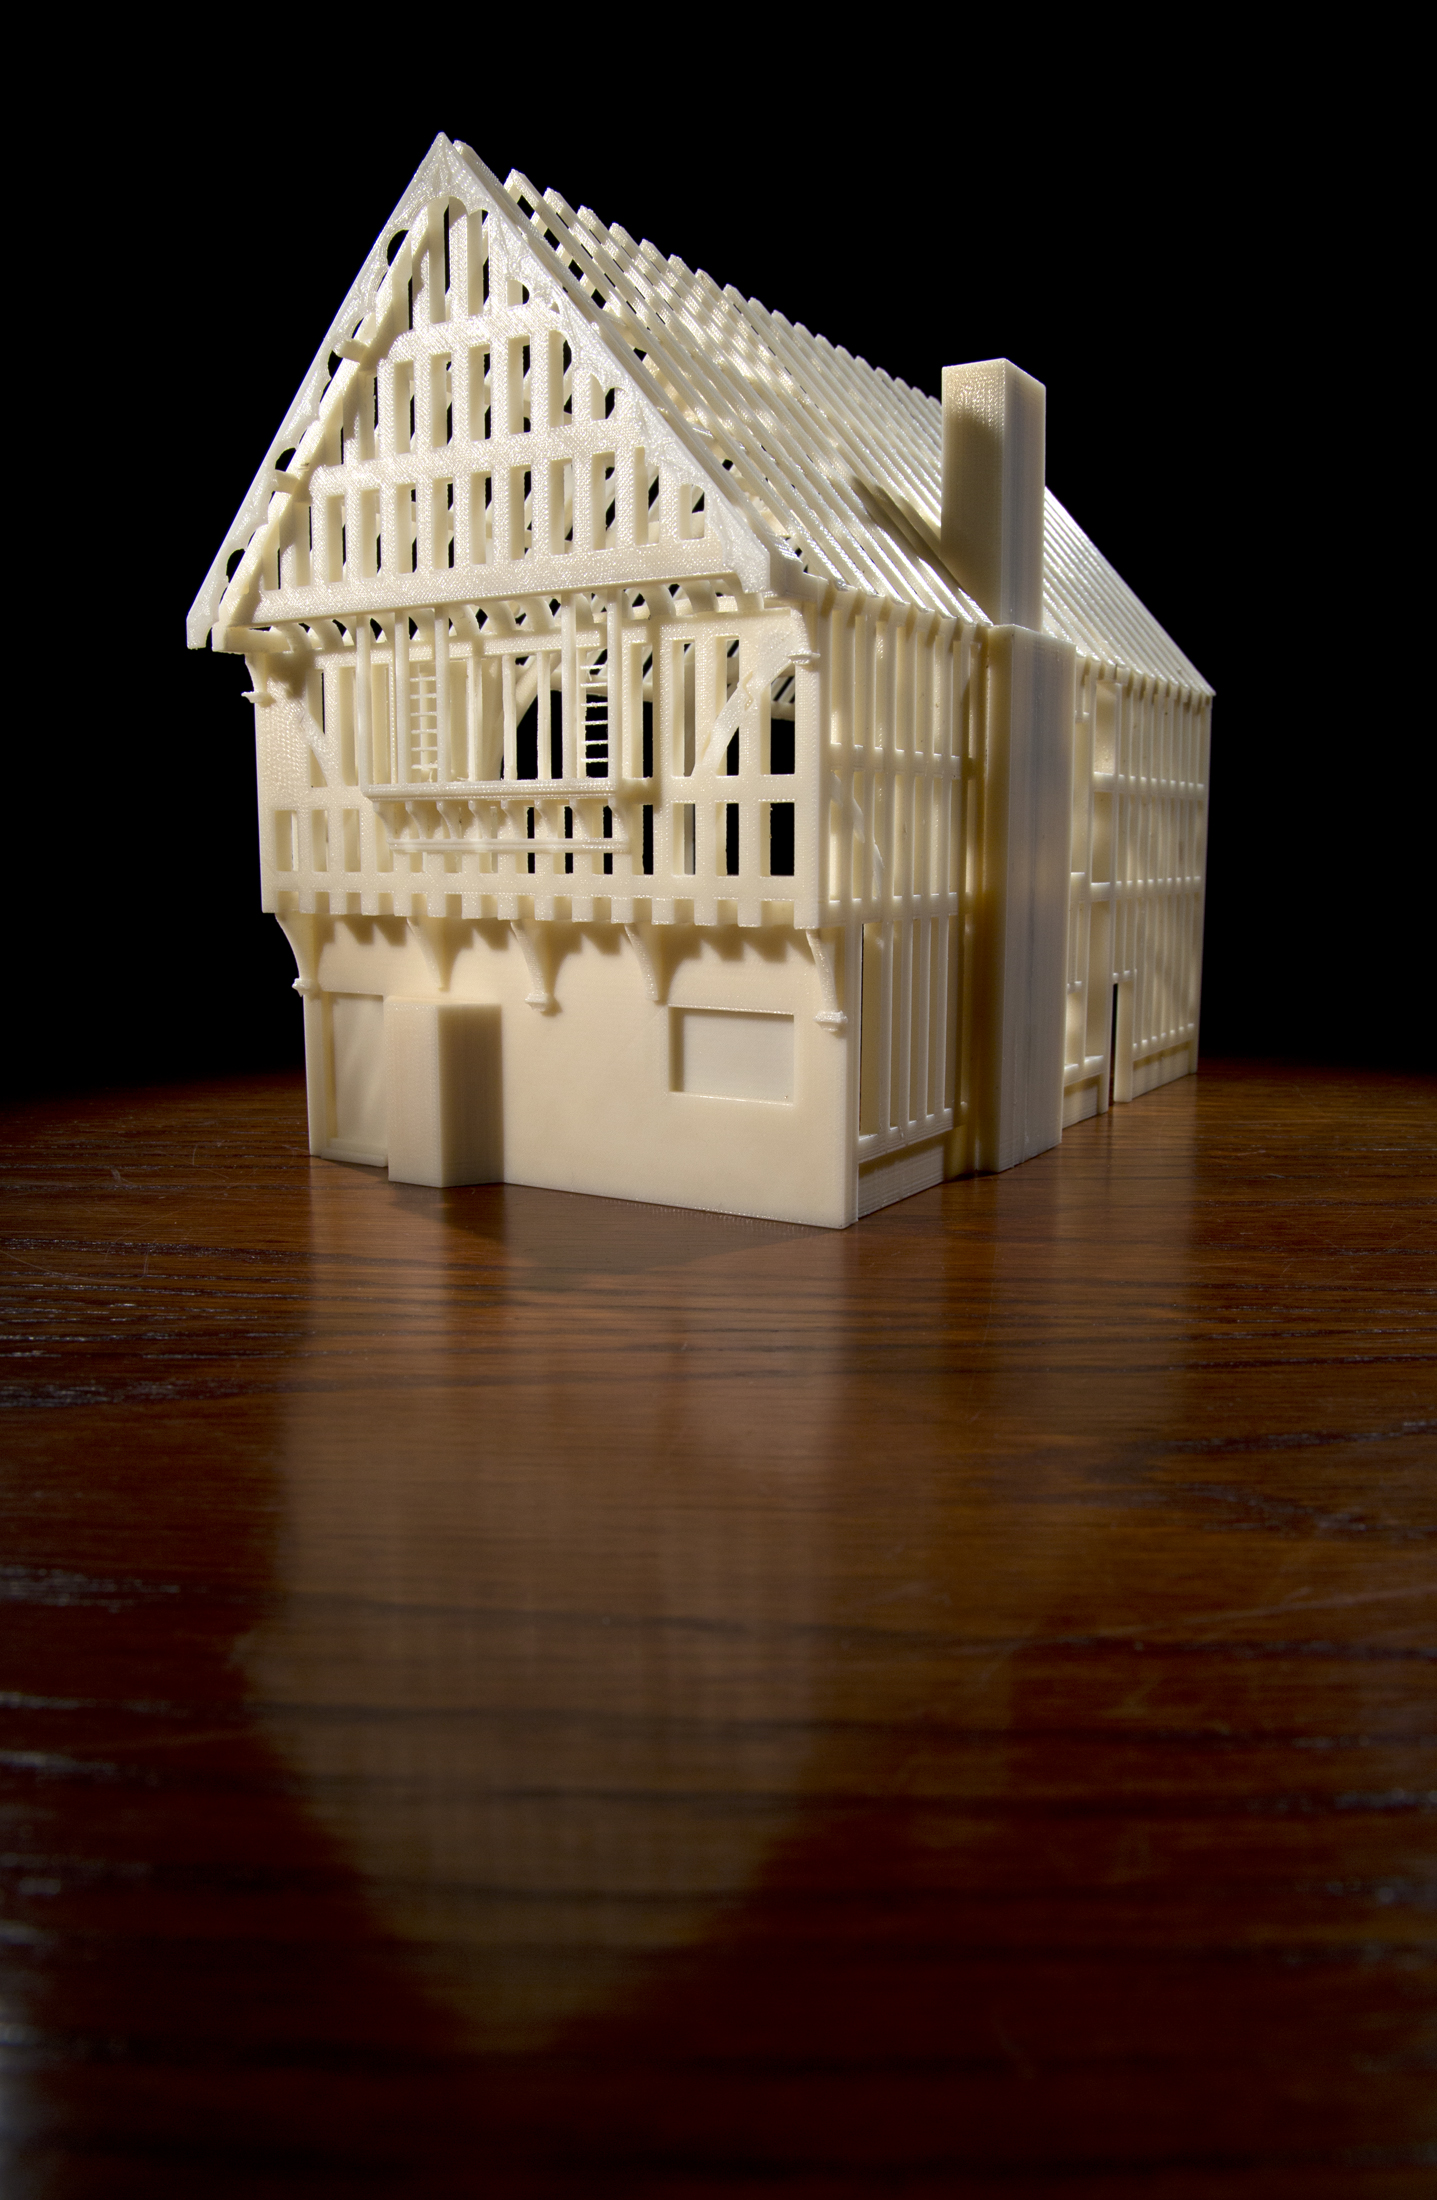 The reconstructed Blue Board Inn as a physical model produced on the University of Leicester's 3D printer - Credit: University of Leicester